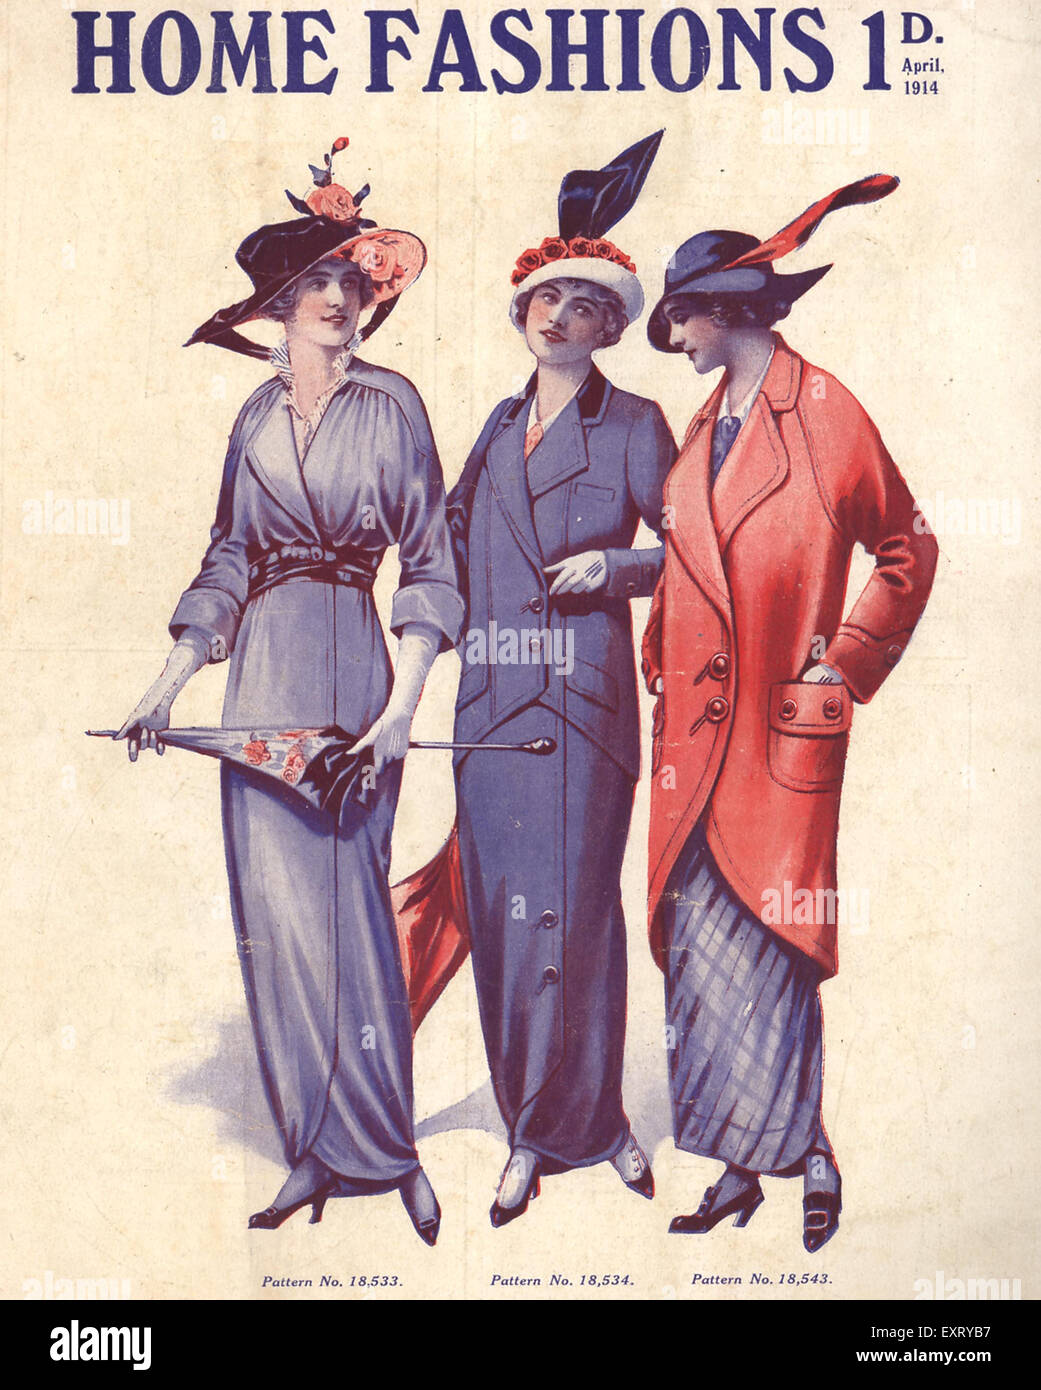 1910s uk home fashion magazine advert stock photo for Fashion for home uk